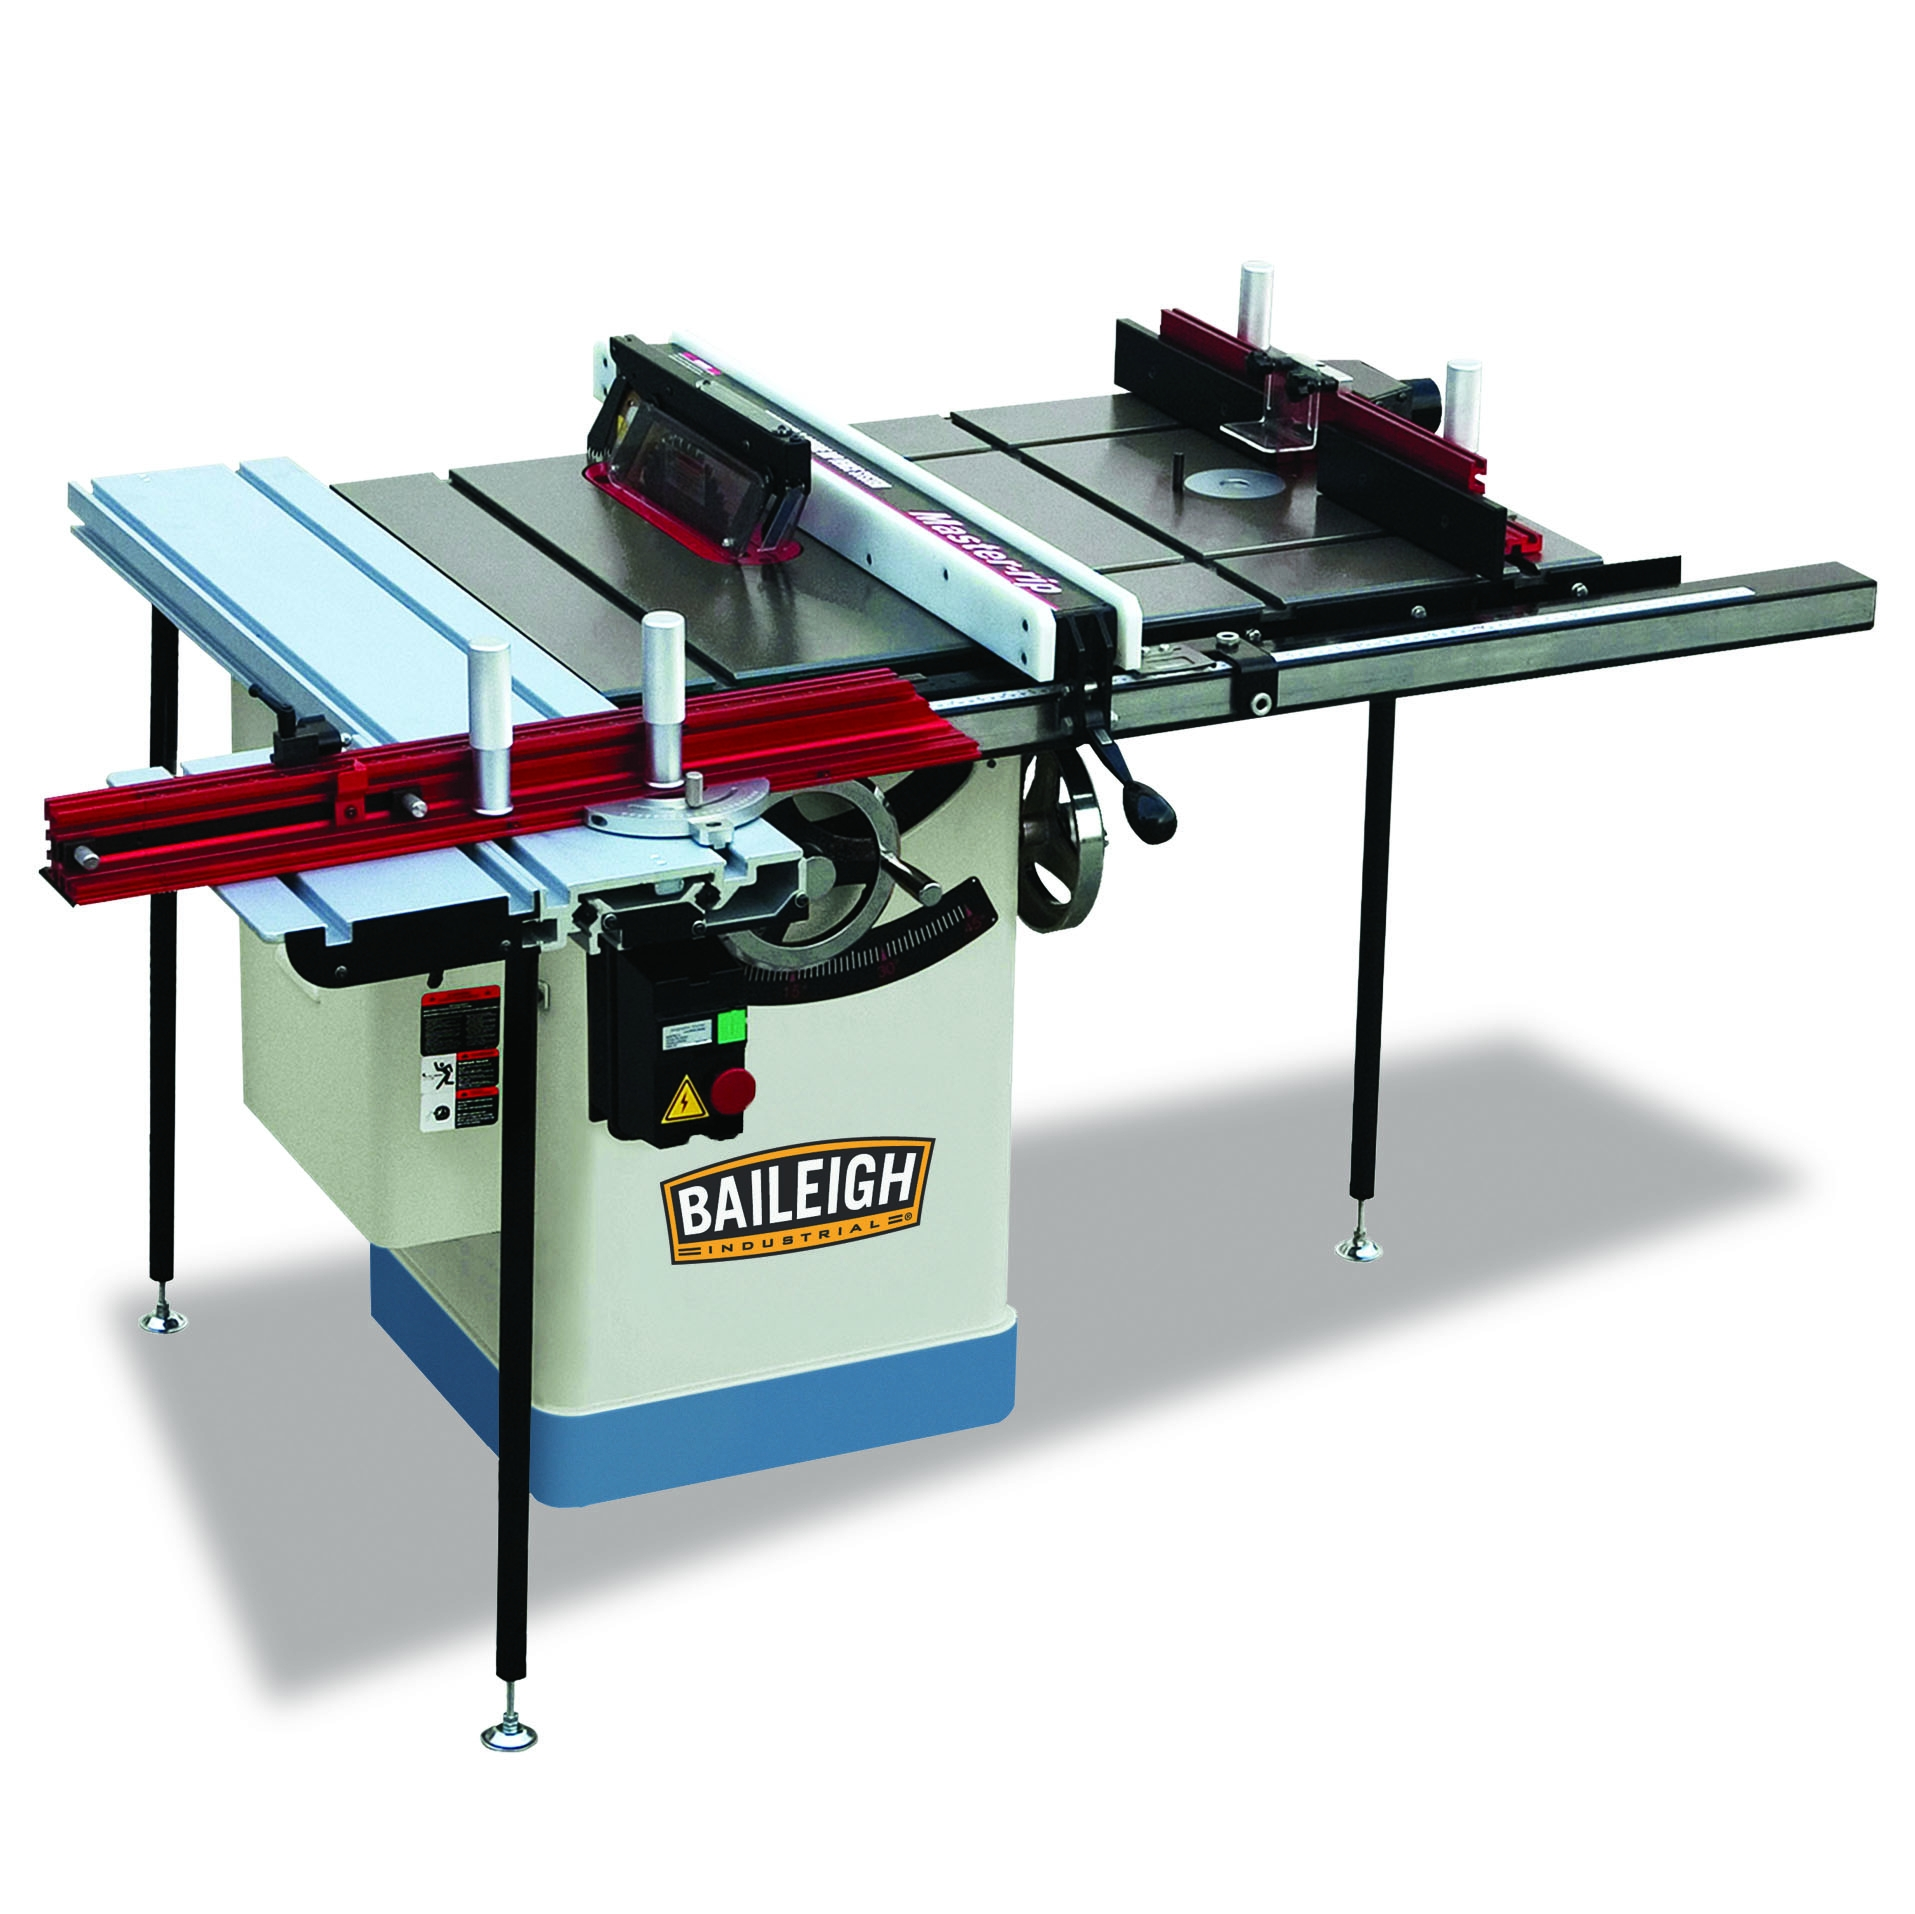 Baileigh Industrial Metalworking Amp Woodworking Machinery